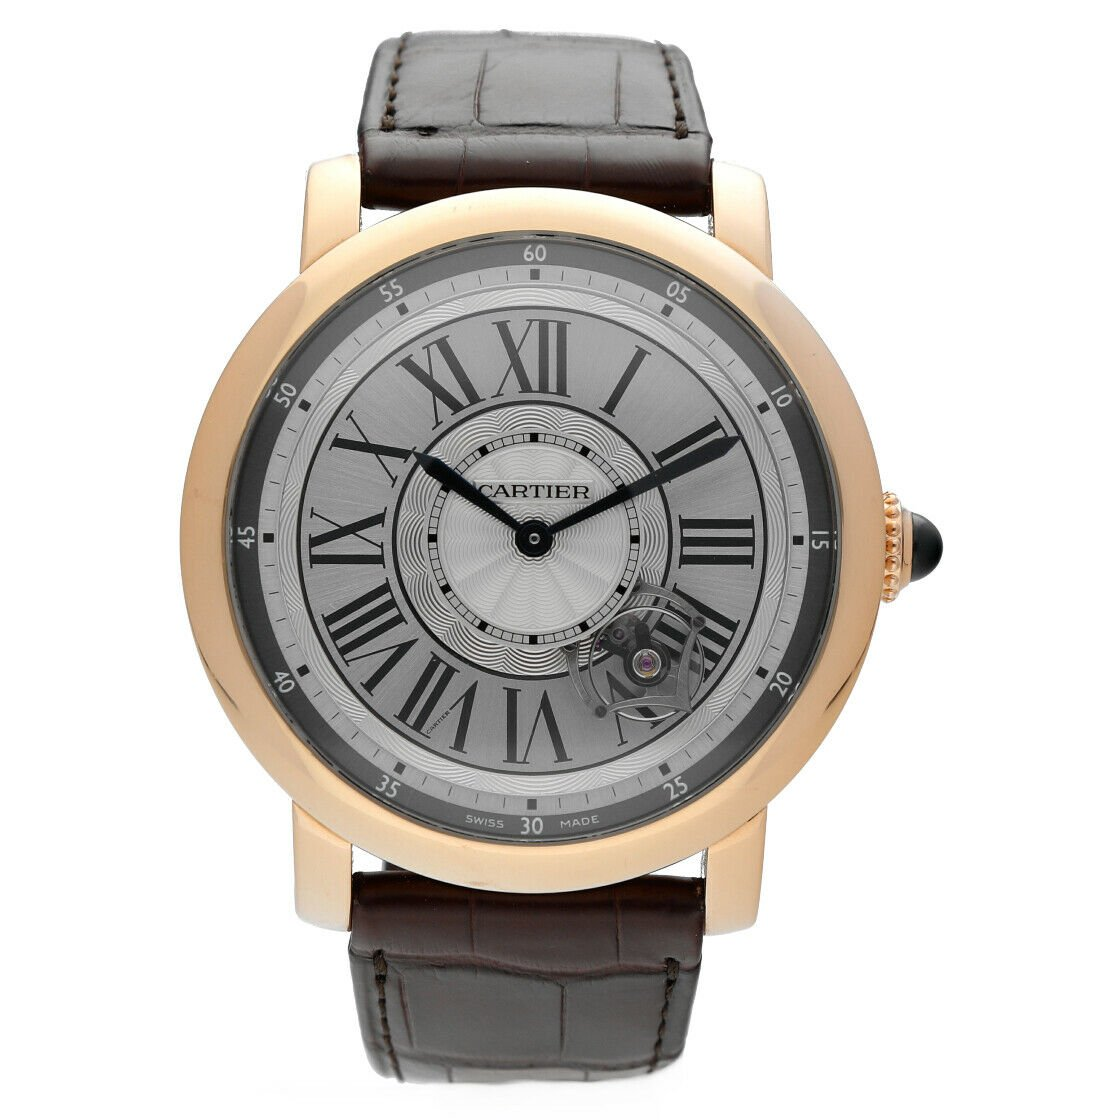 Cartier 3308 W1556205 Rotonde Astrotourbillon 18k Rose Gold Limited Mens Watch 124243384081